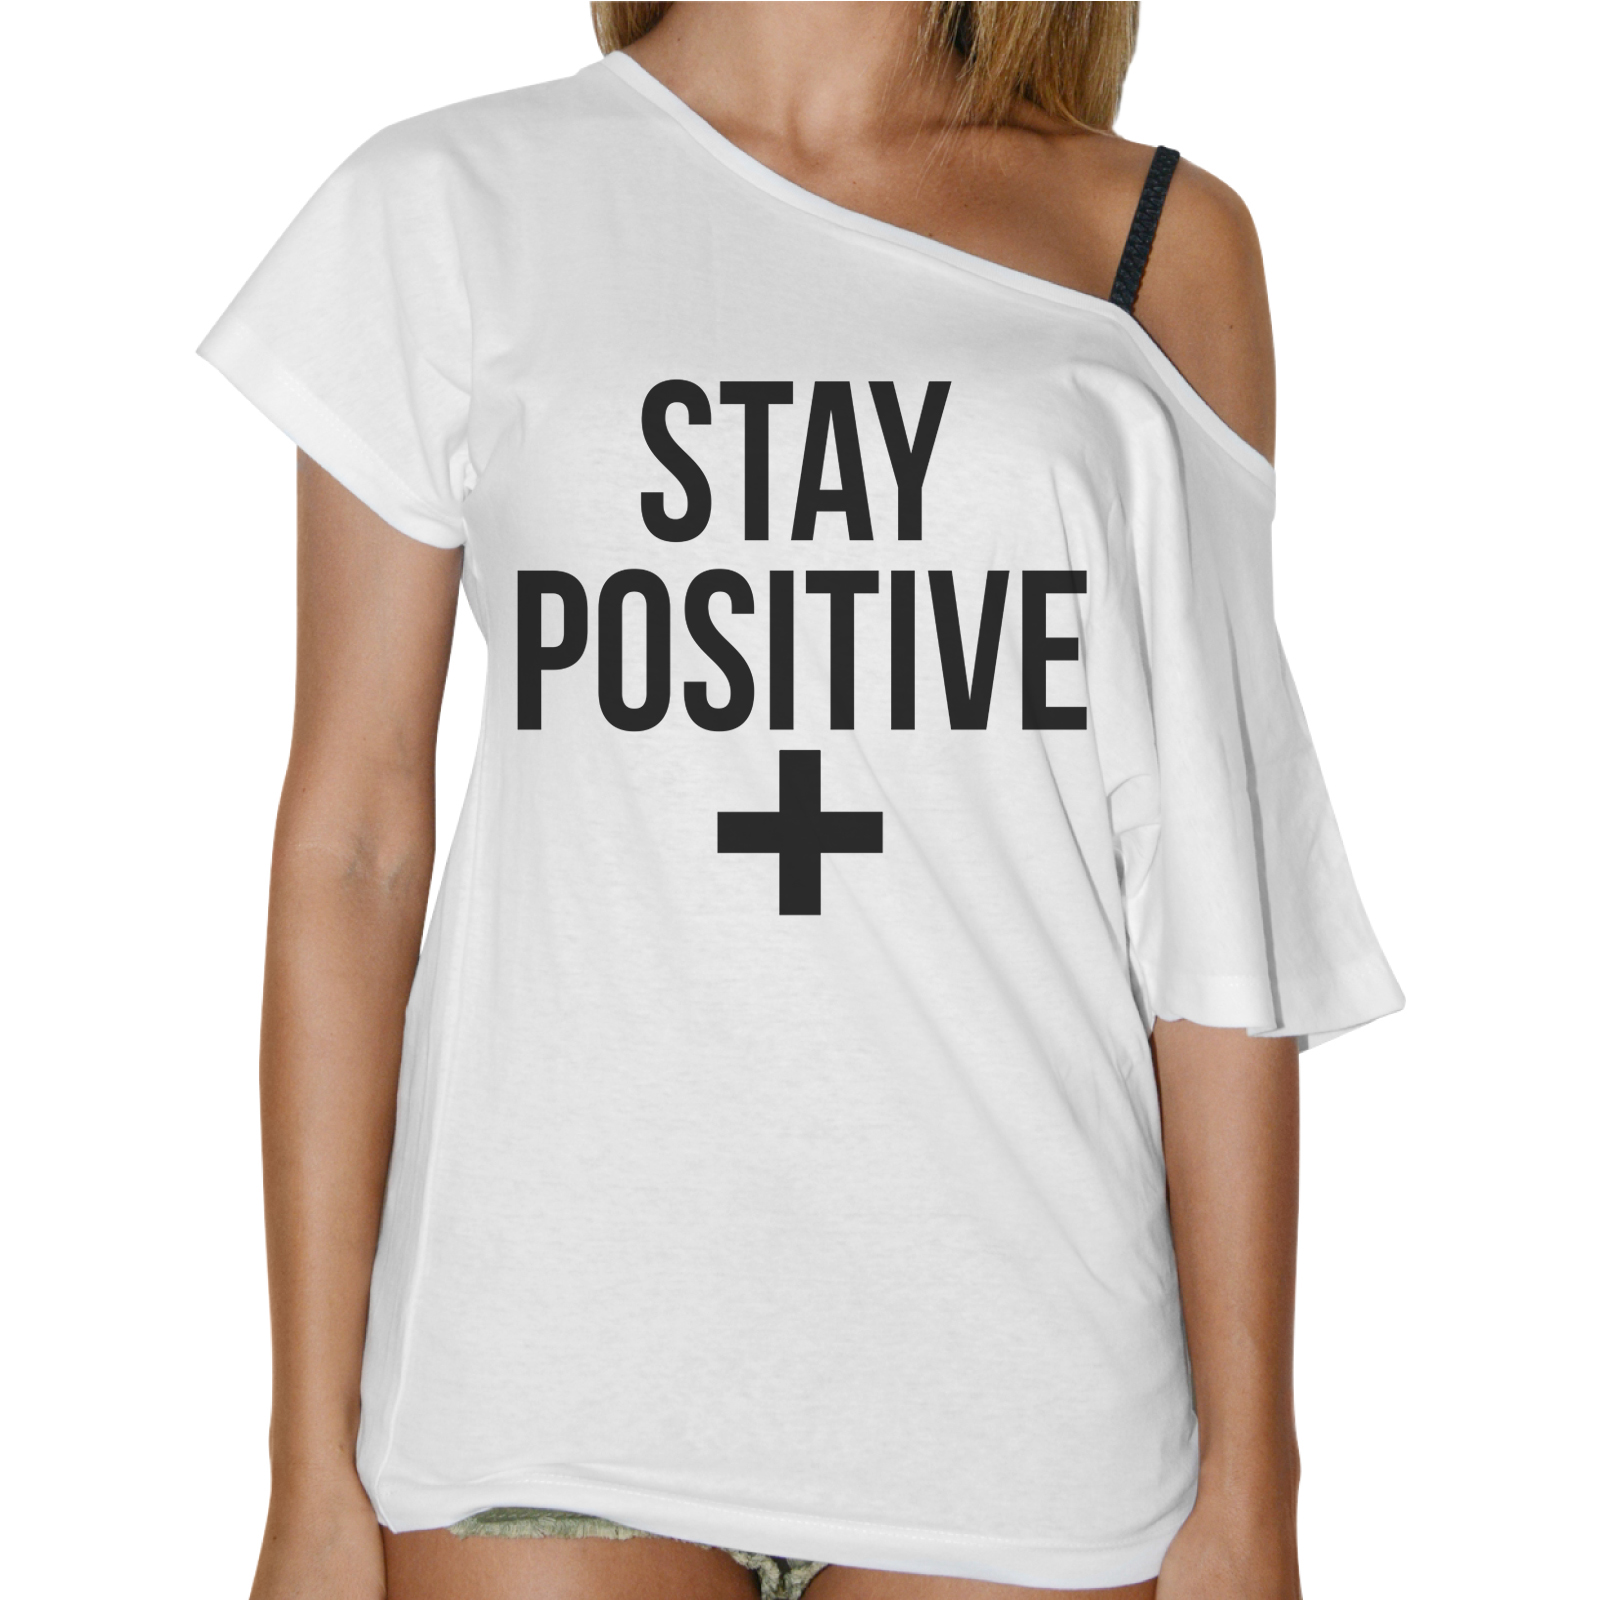 T-Shirt Donna Collo Barca STAY POSITIVE